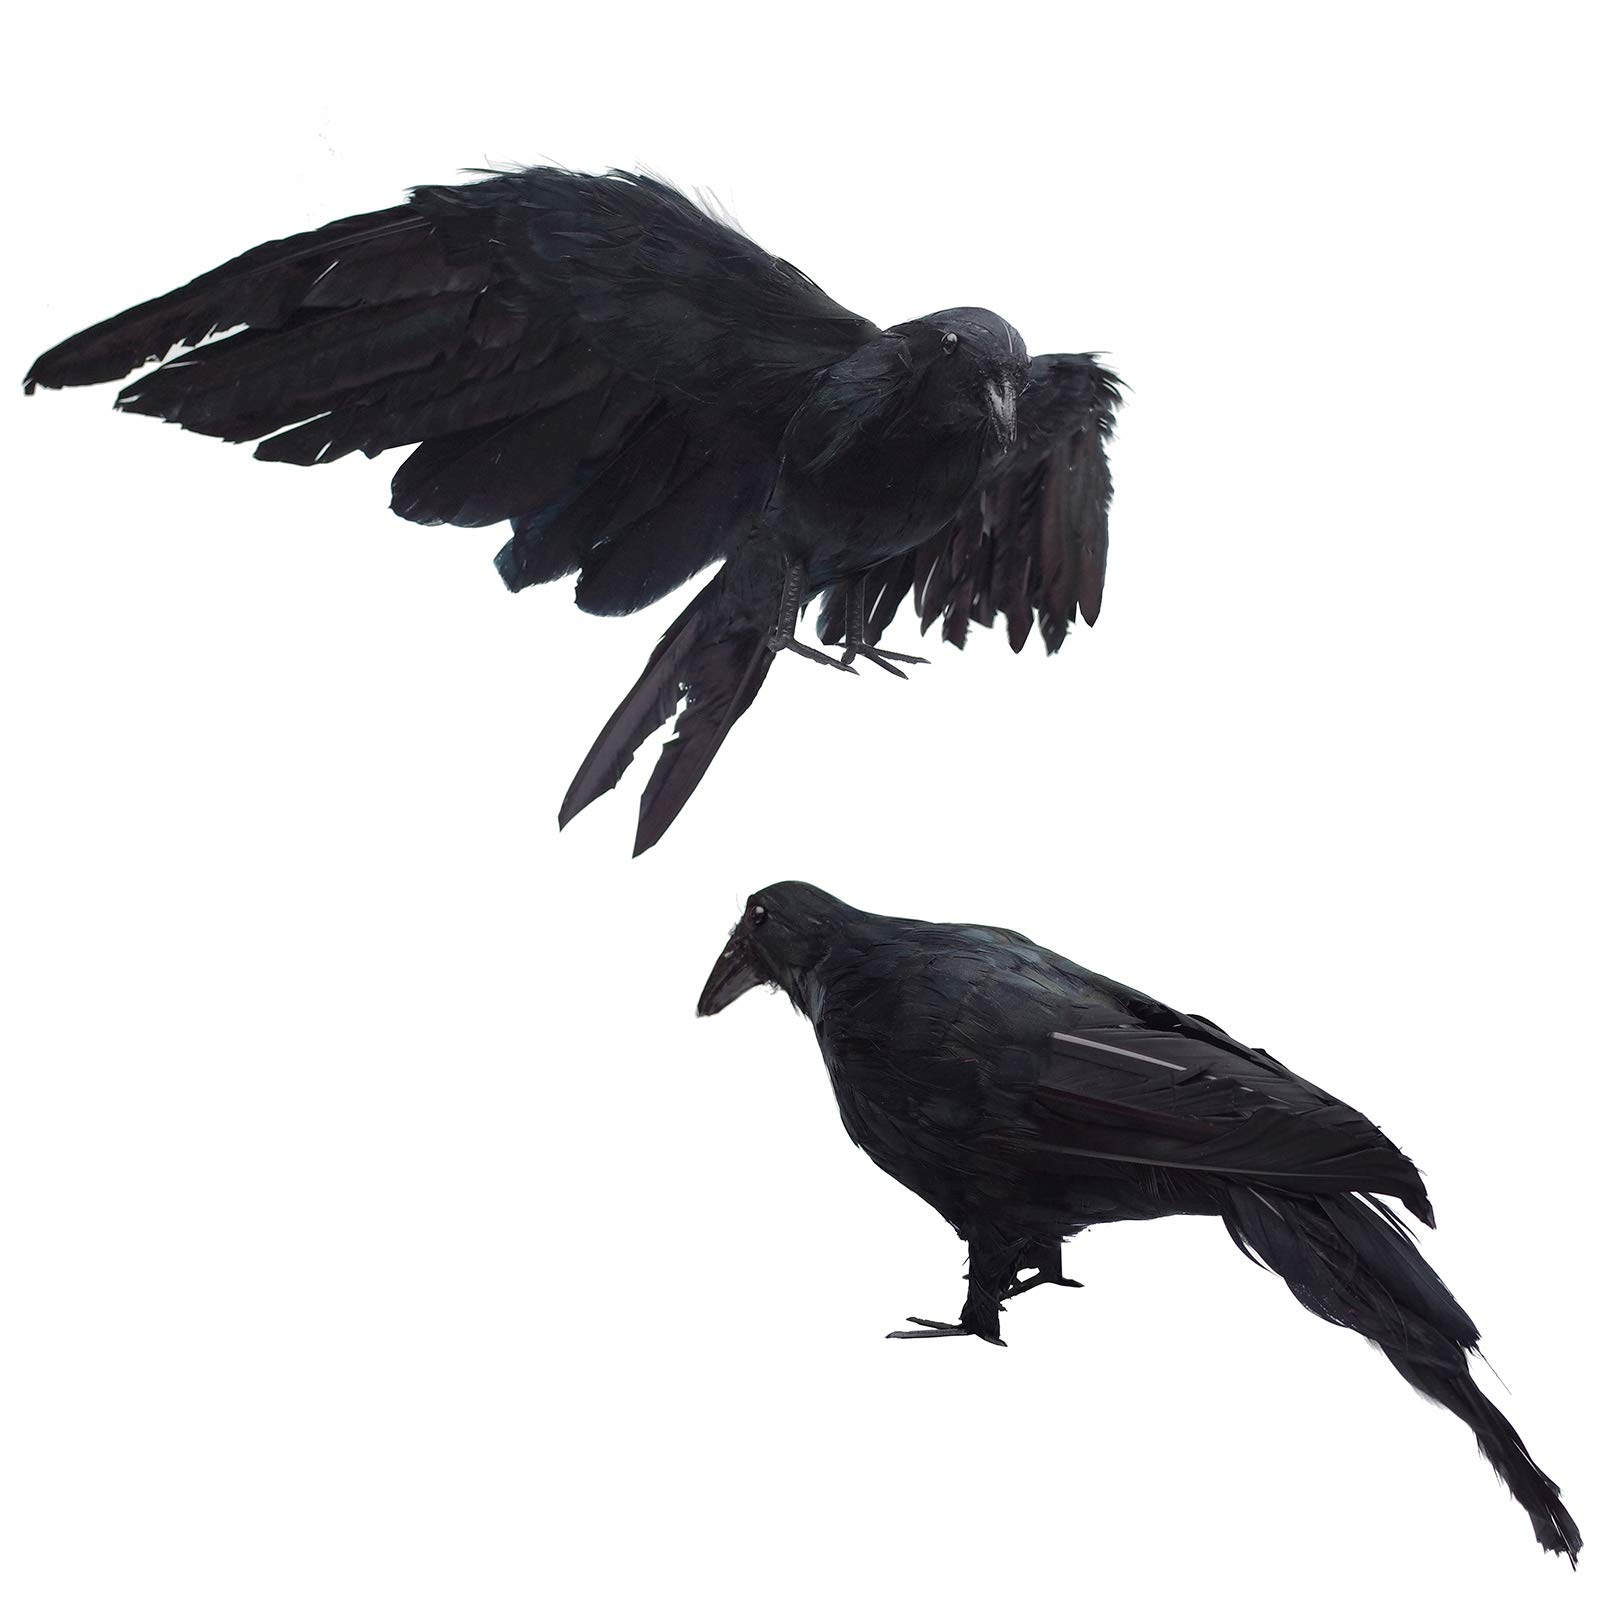 2-Pack Realistic Crows Lifesize 13'' Extra Large Handmade Black Feathered Crow for Halloween Decorations Birds